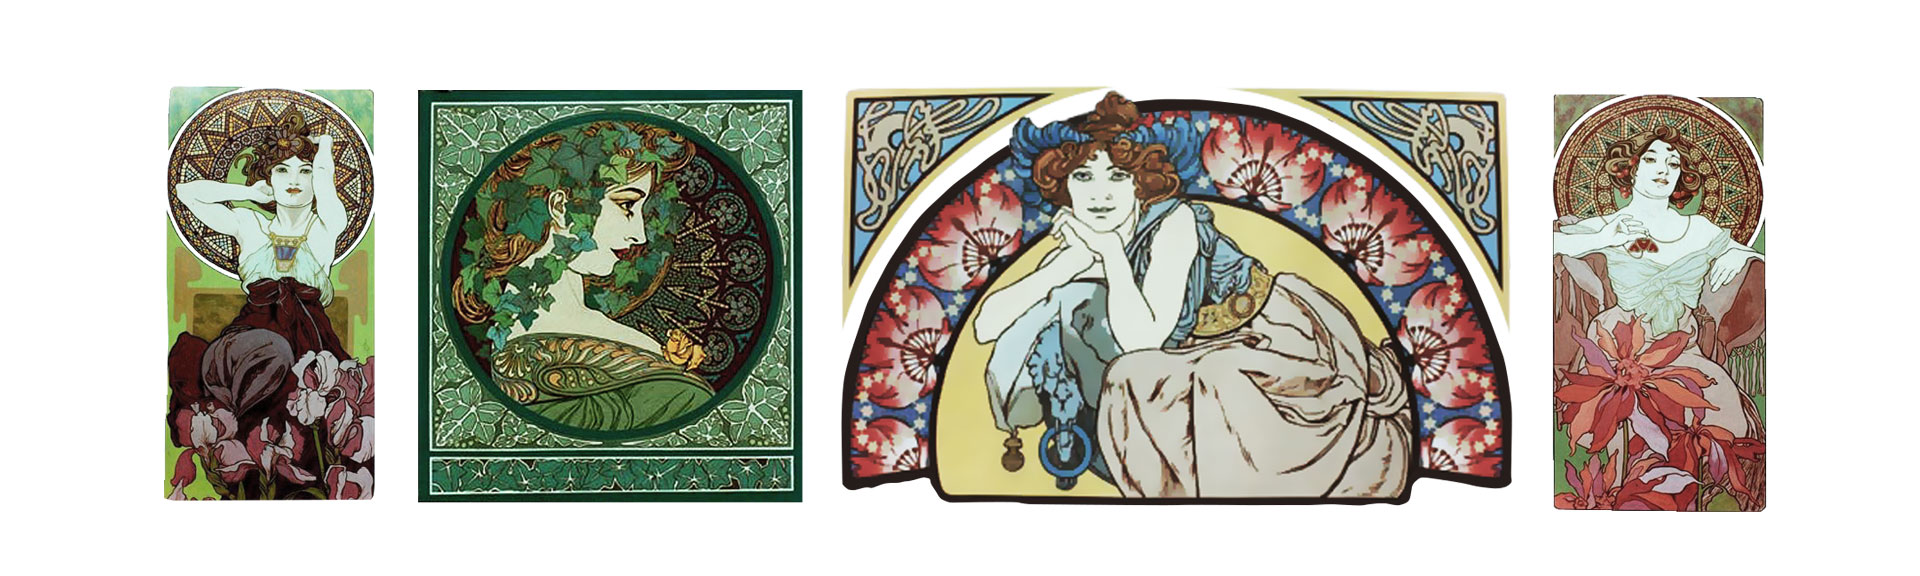 Mucha Inspired Art